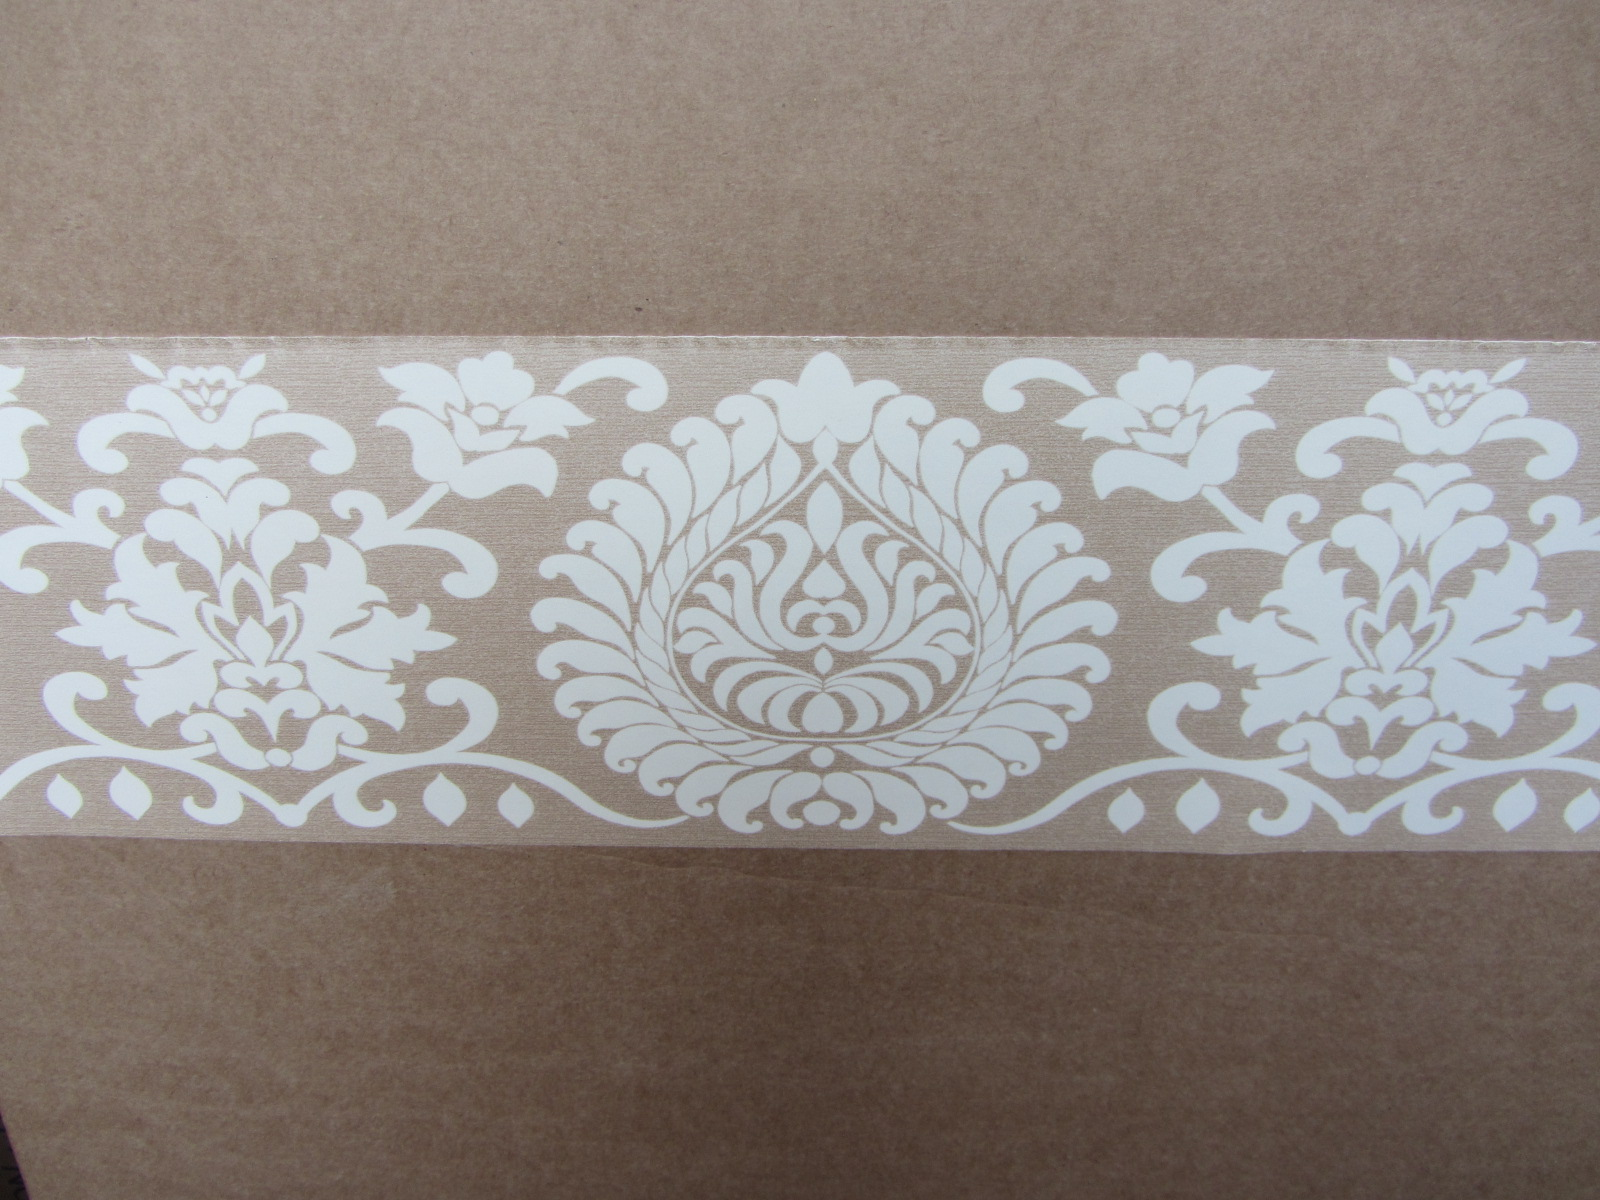 coving borders wallpapers - photo #47